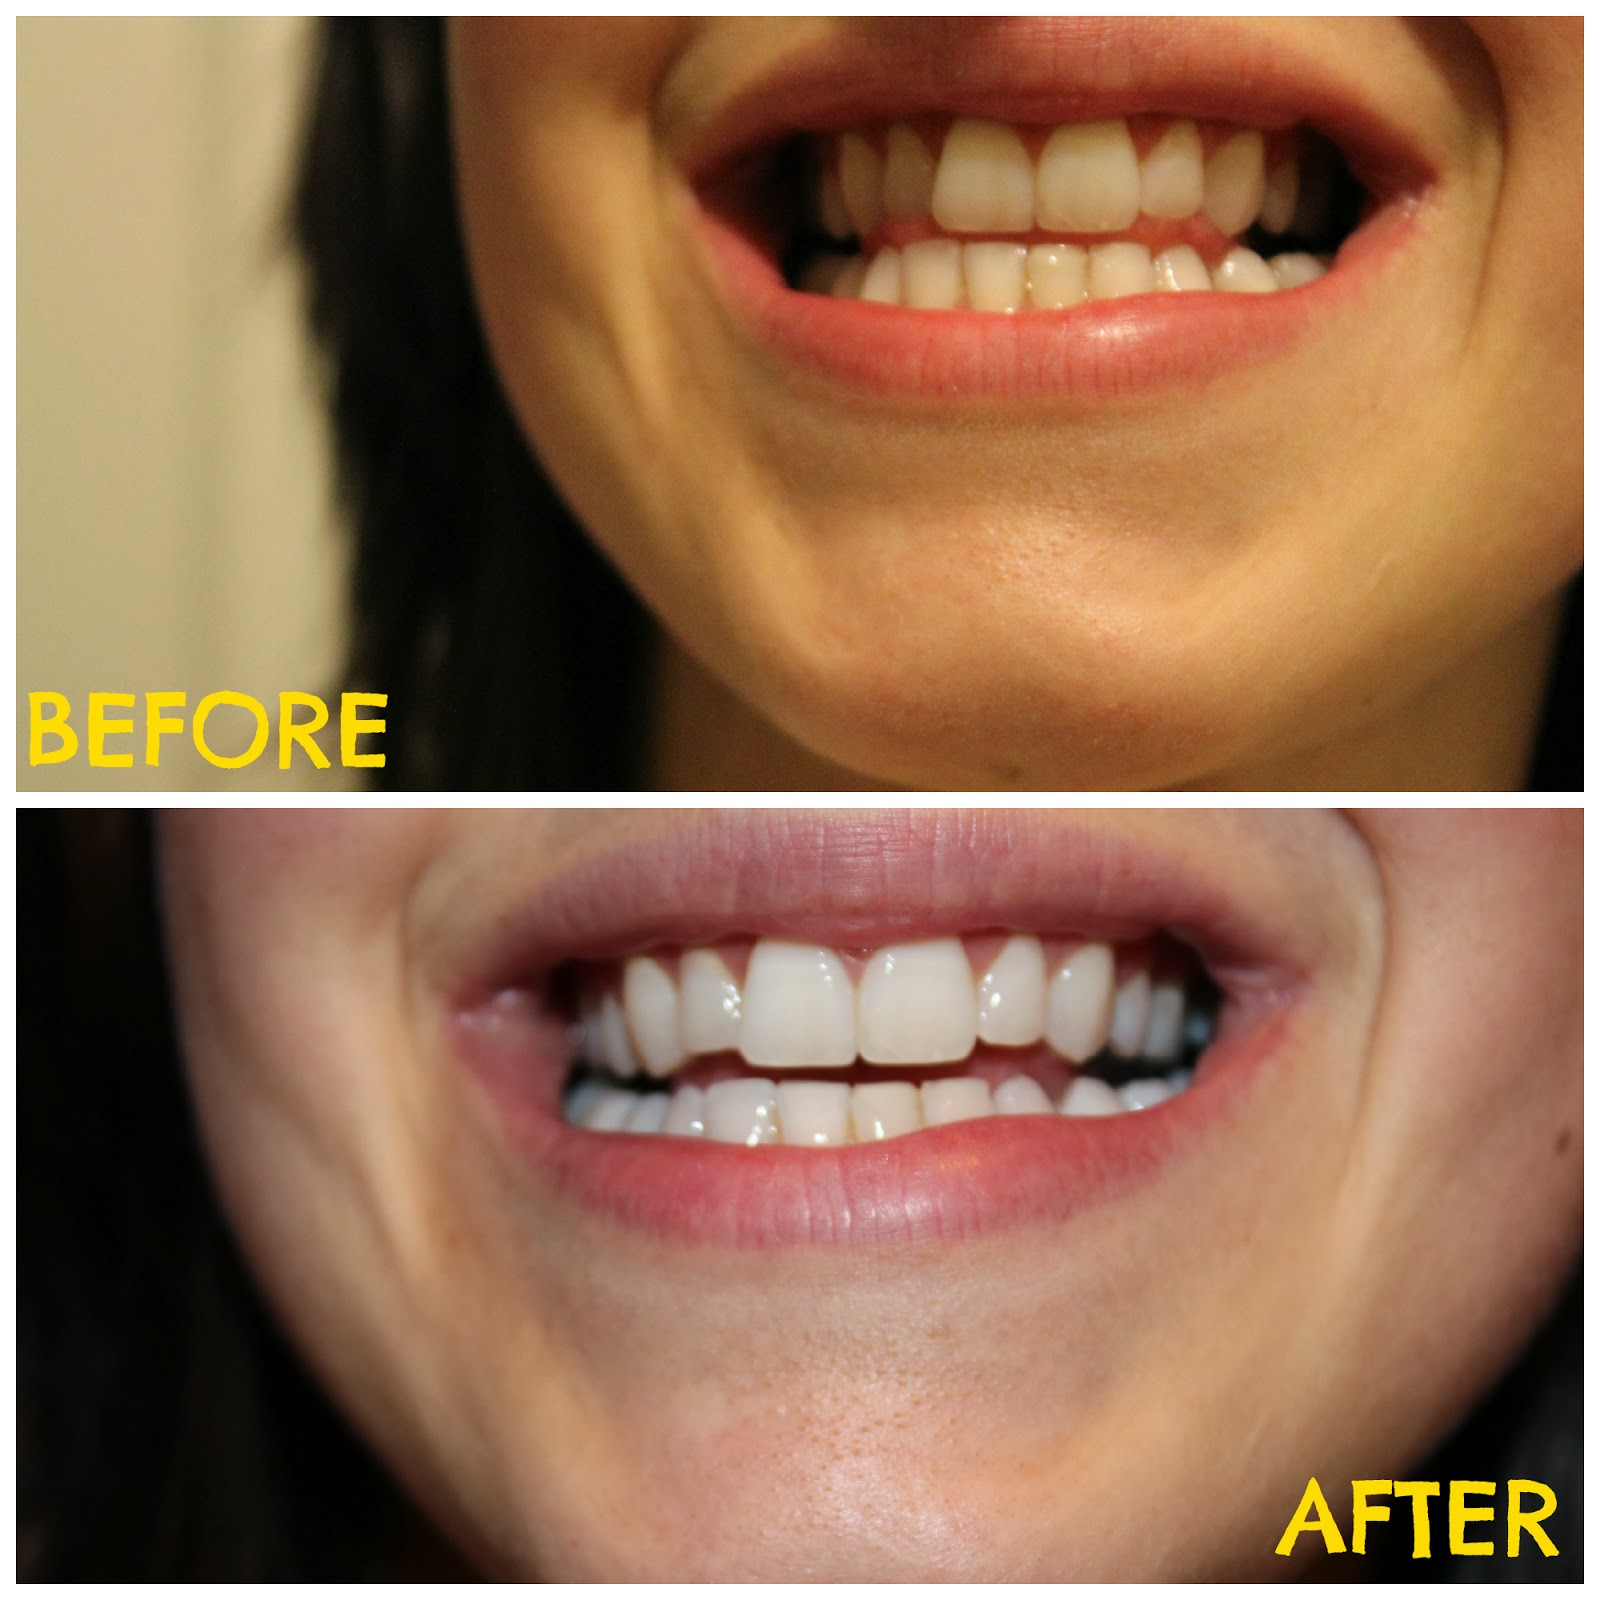 baking soda teeth before after displaying 19 images for baking soda